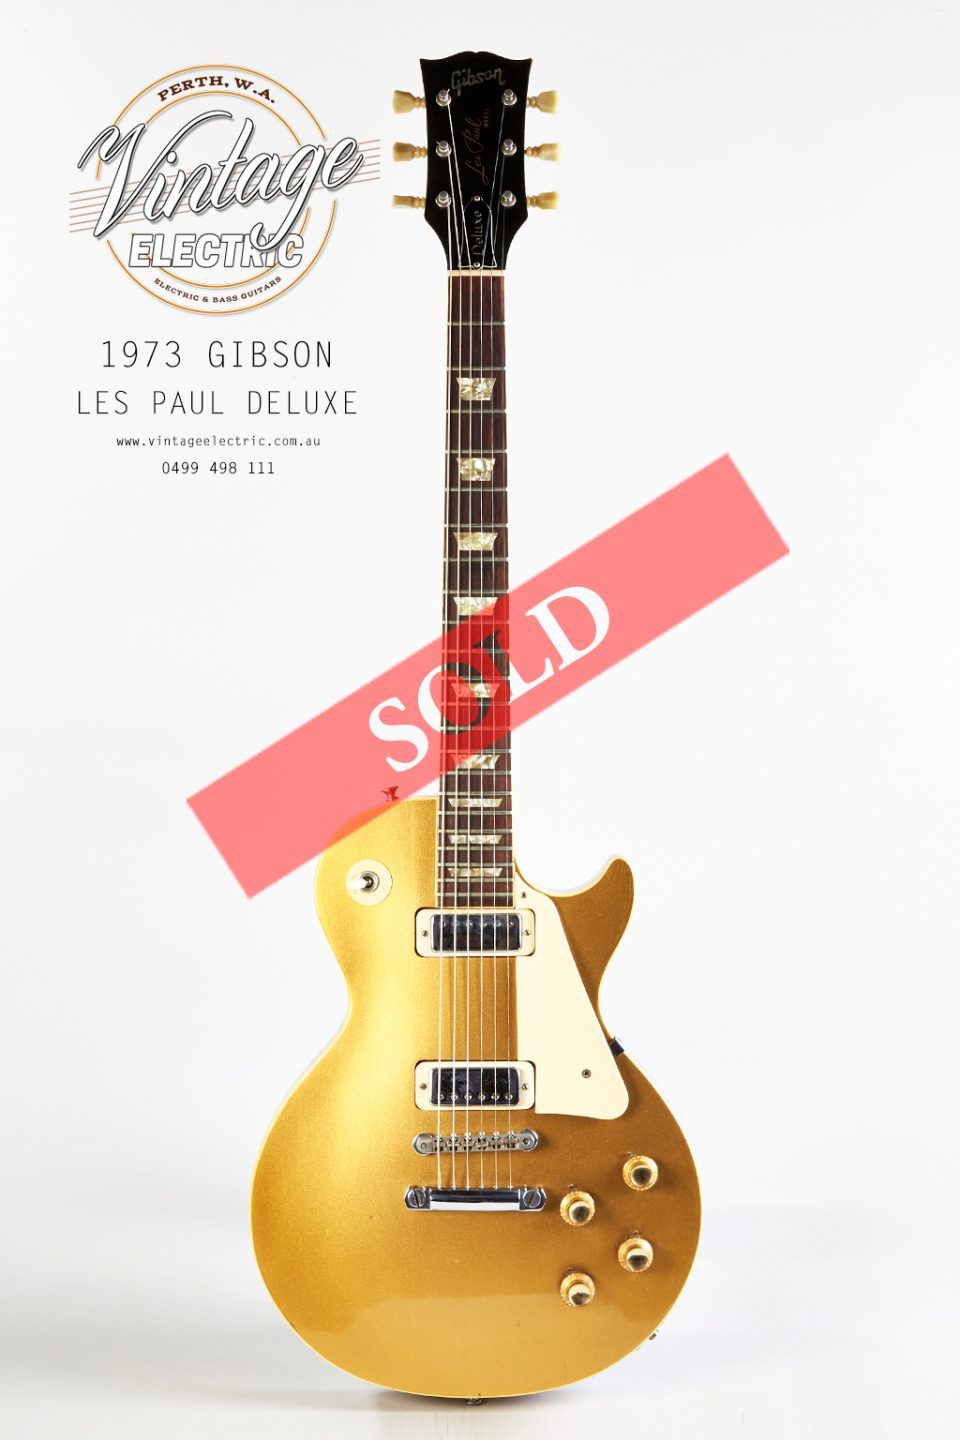 1973 Gibson Les Paul Deluxe Goldtop SOLD